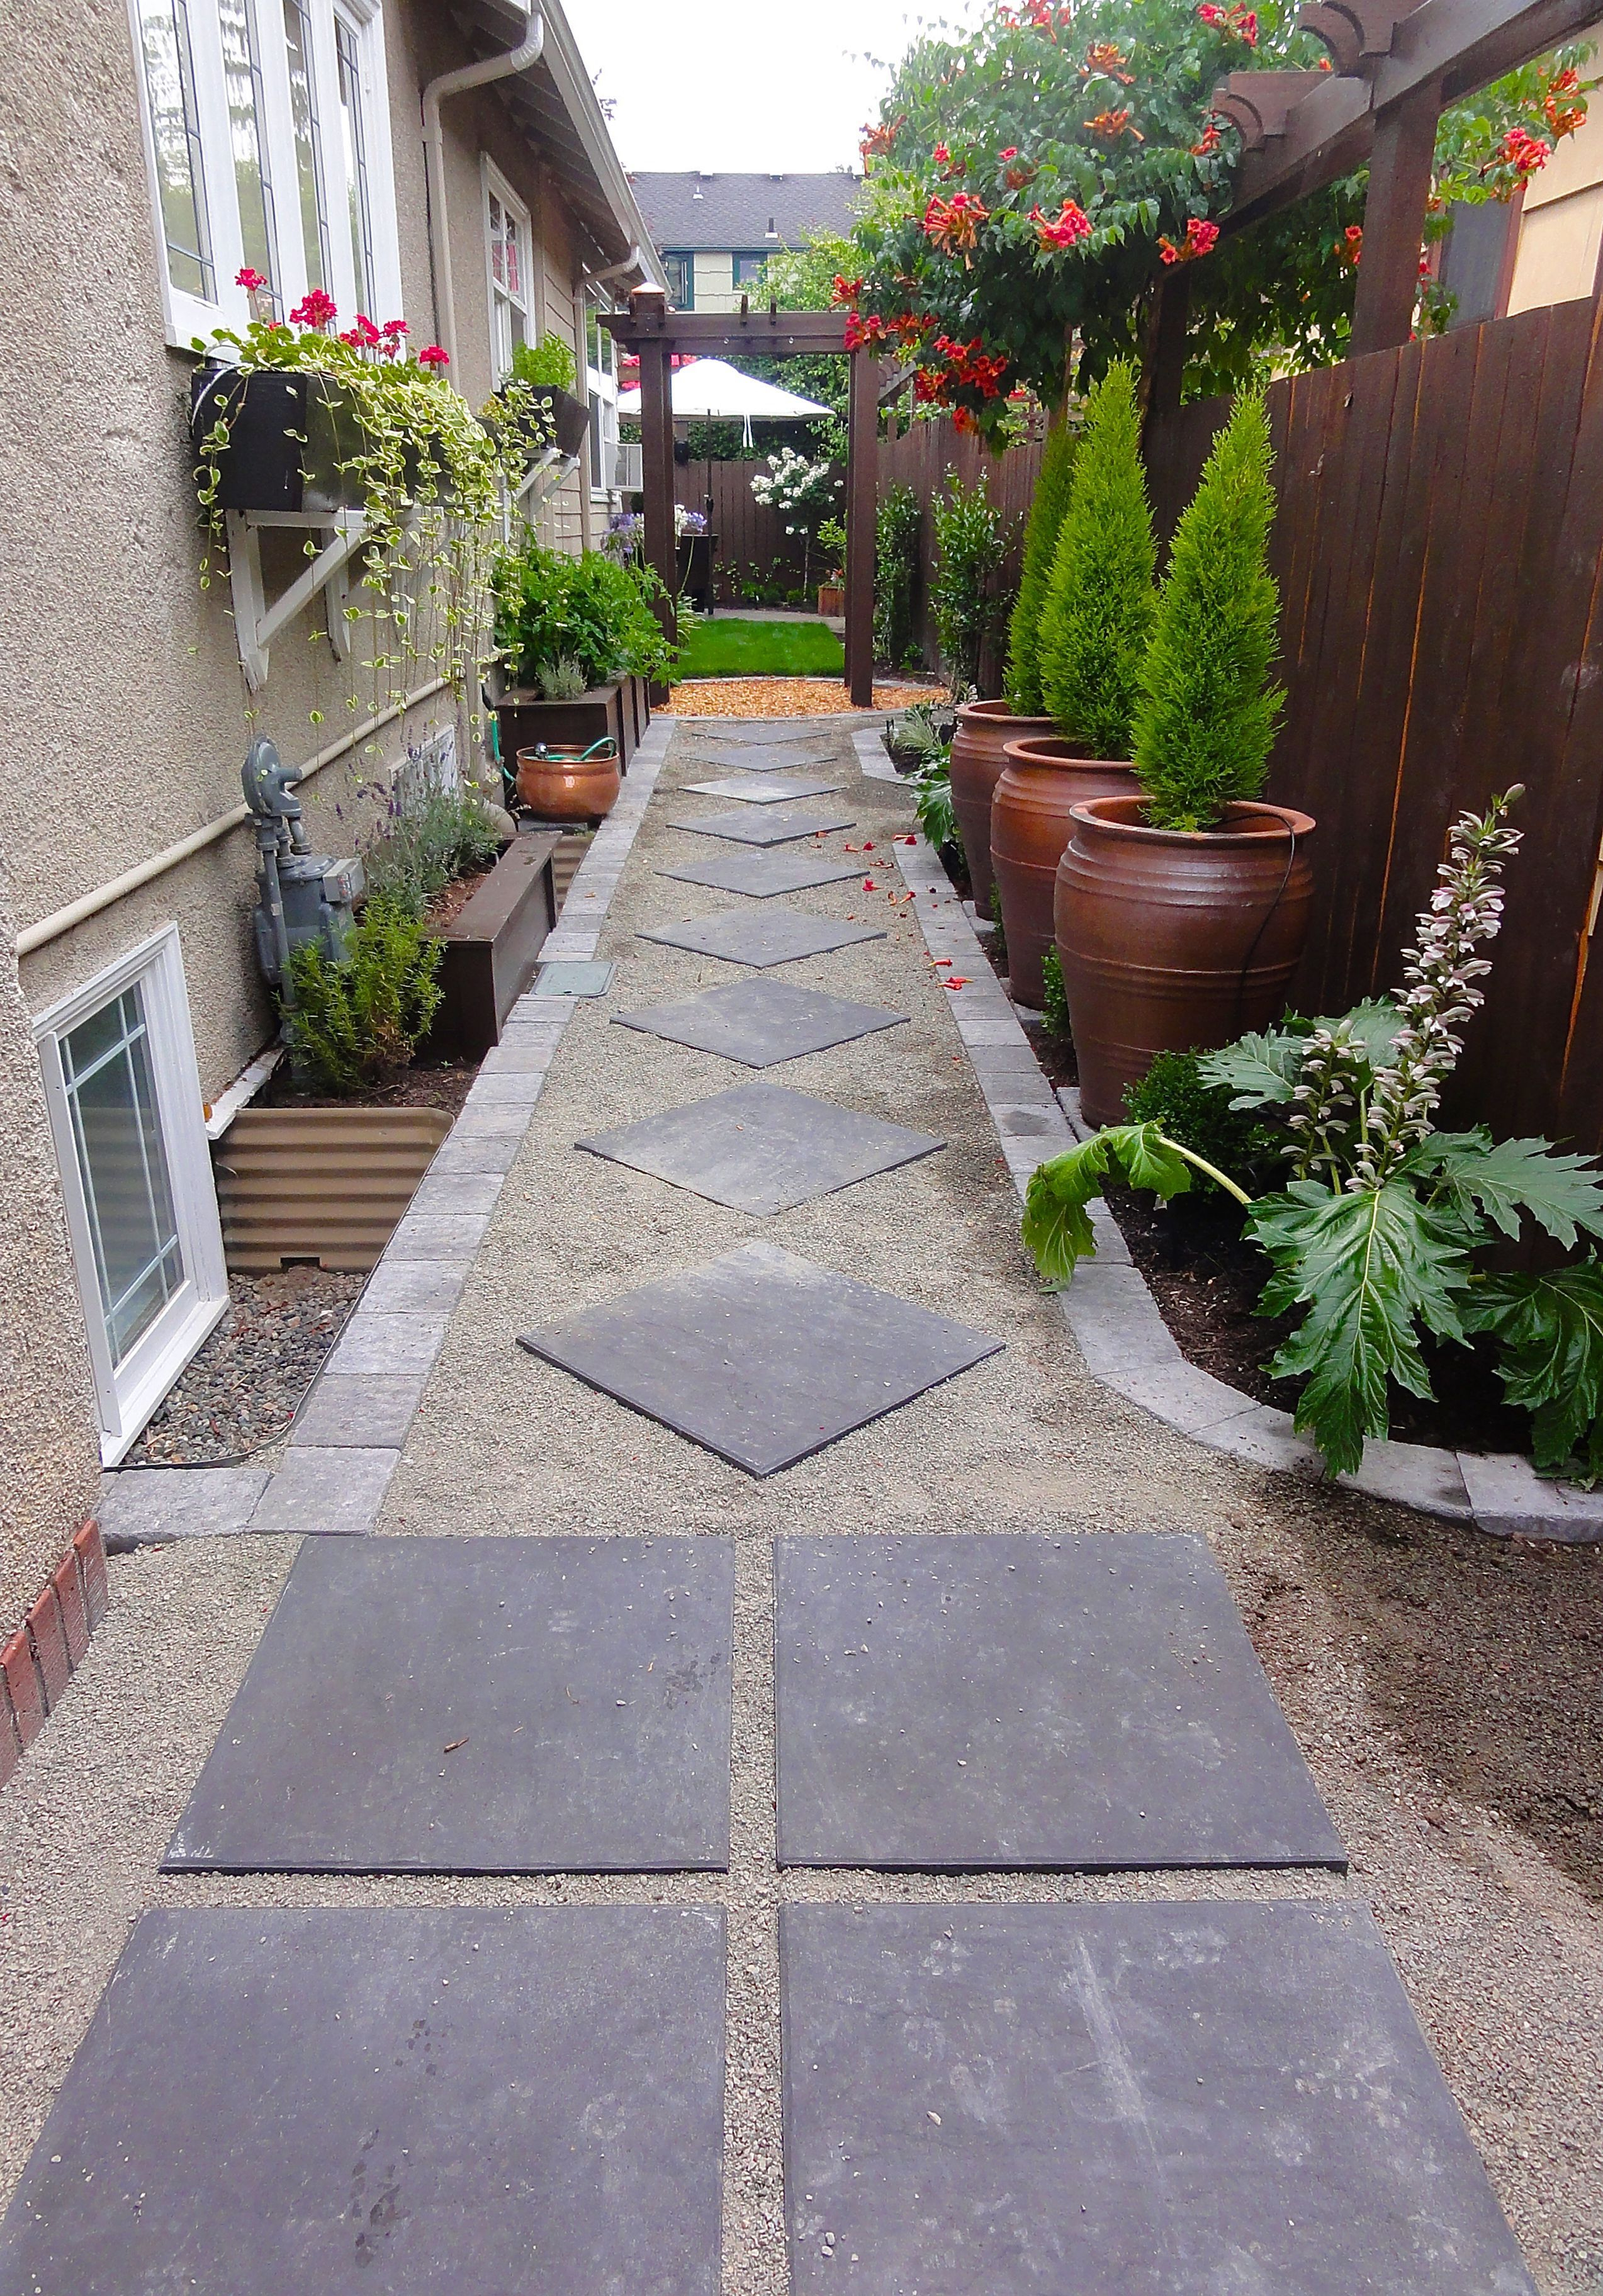 Top 10 Incredible Small Garden For Small Backyard Ideas Narrow intended for 12 Genius Concepts of How to Build Small Backyard Ideas